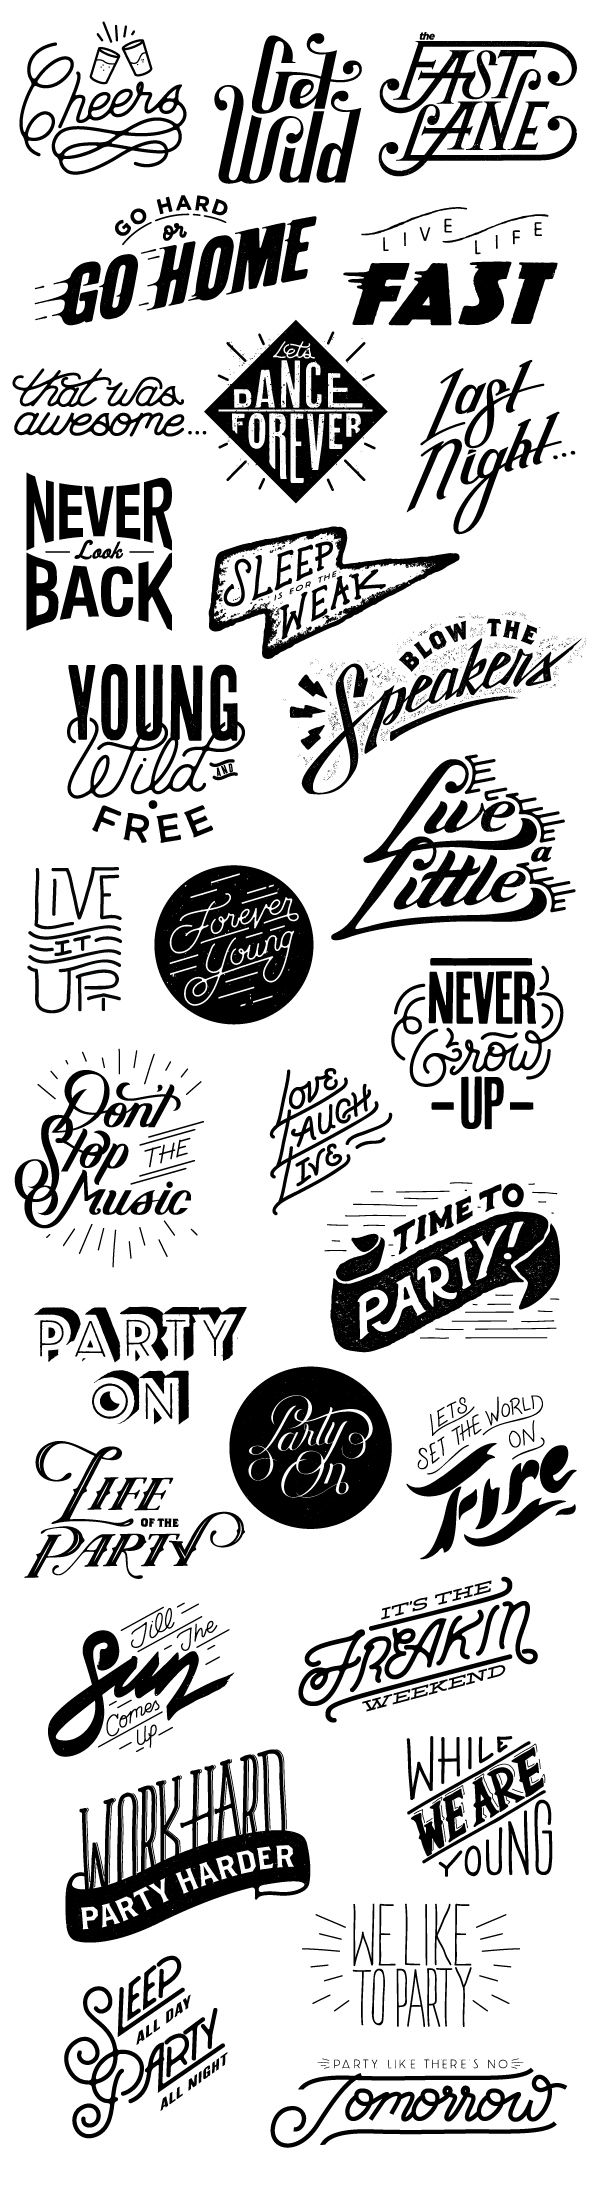 some cool graphic design fonts I came across a while ago!